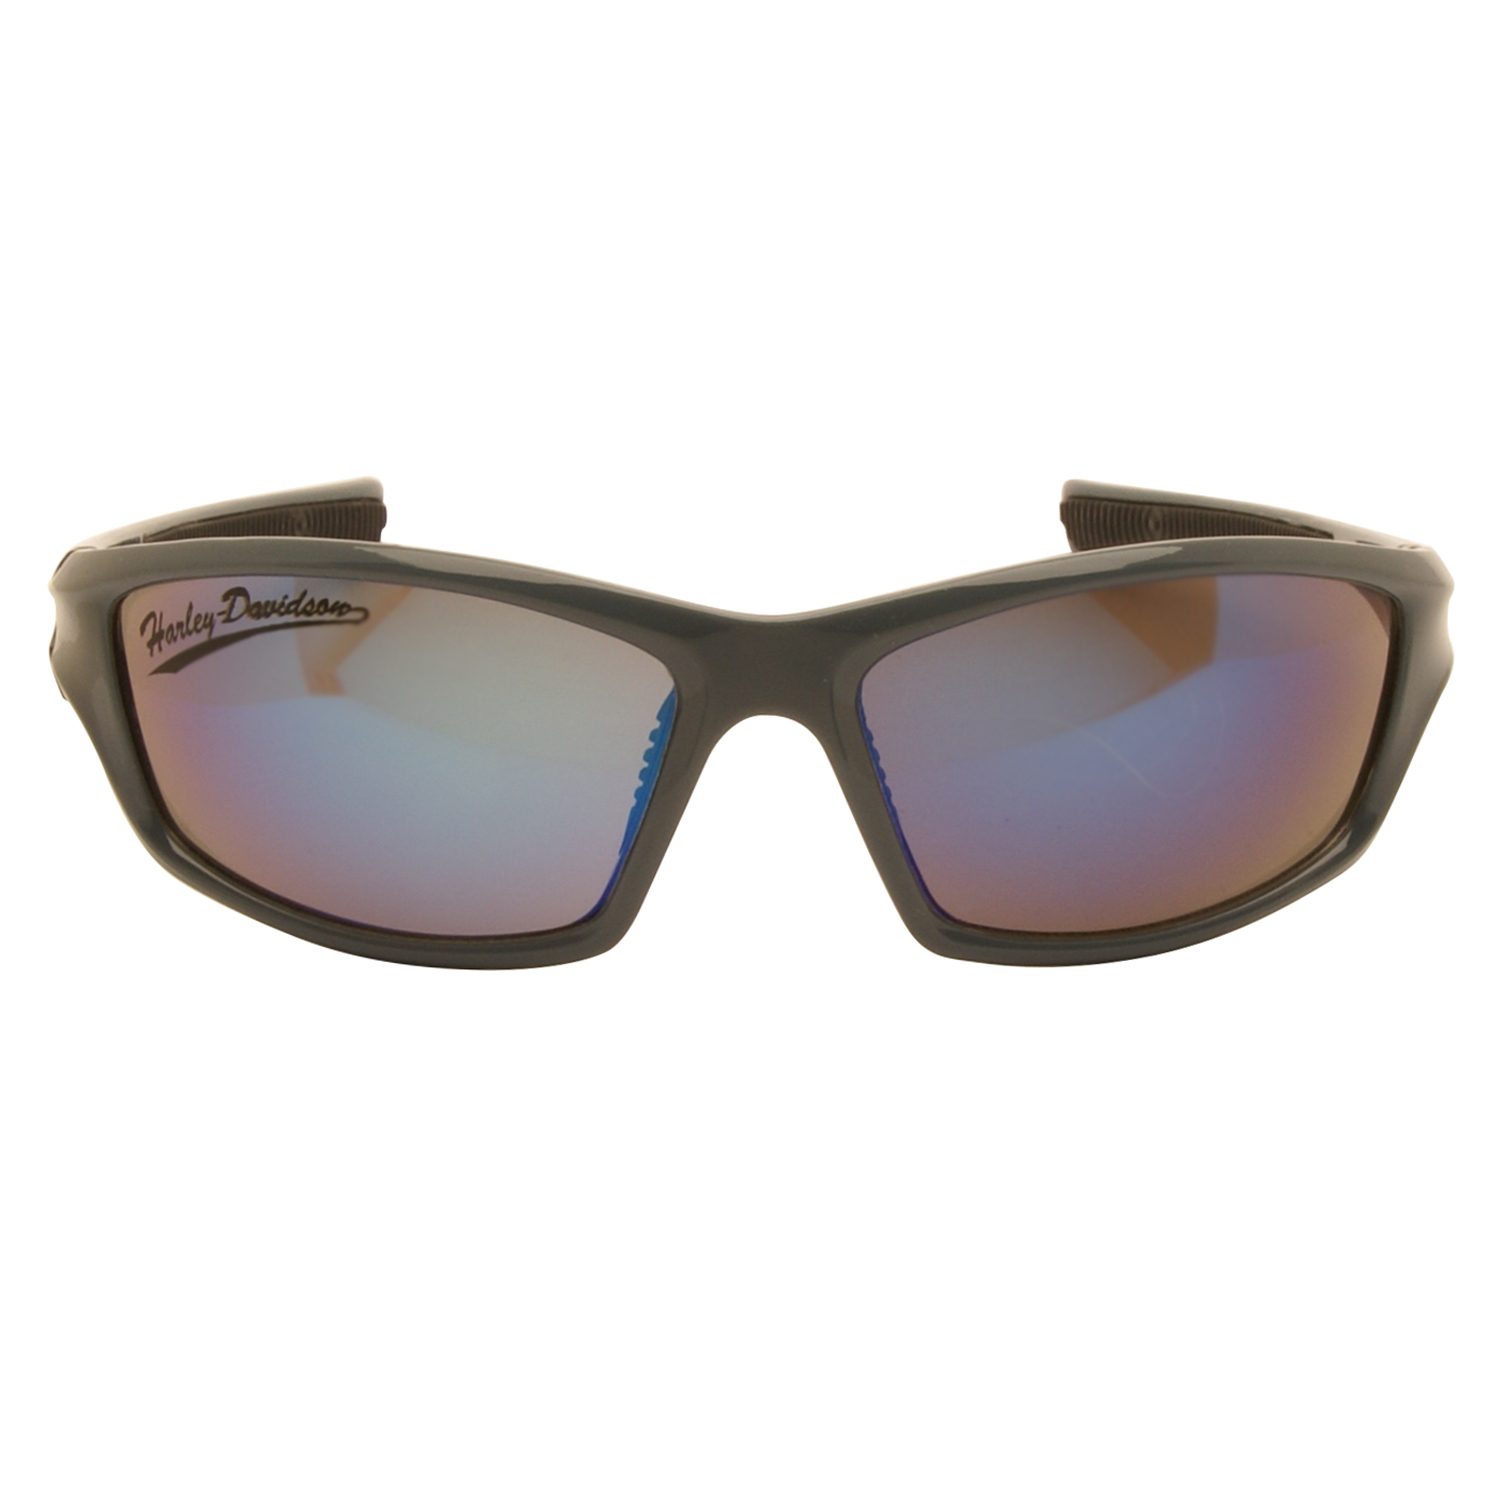 Harley Davidson – Shiny Blue Mirror Wraparound Style Sunglasses with Case